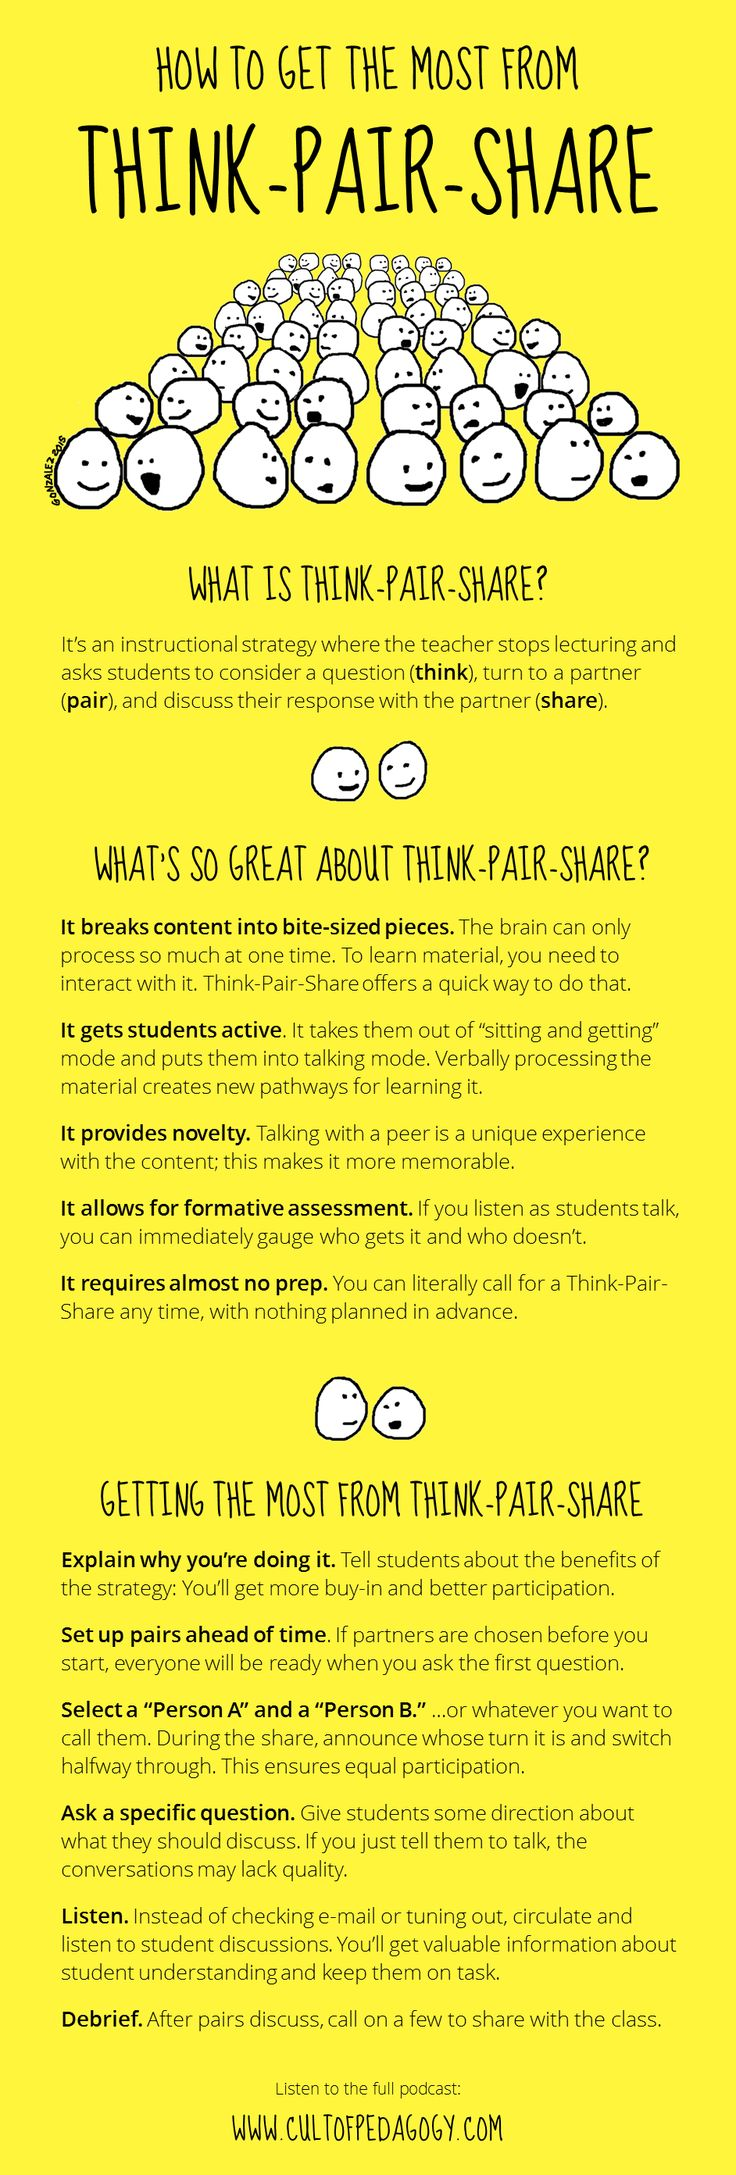 Celebrating Think-Pair-Share, the Little Strategy That Could, and sharing some best practices for making it work for you. [...]